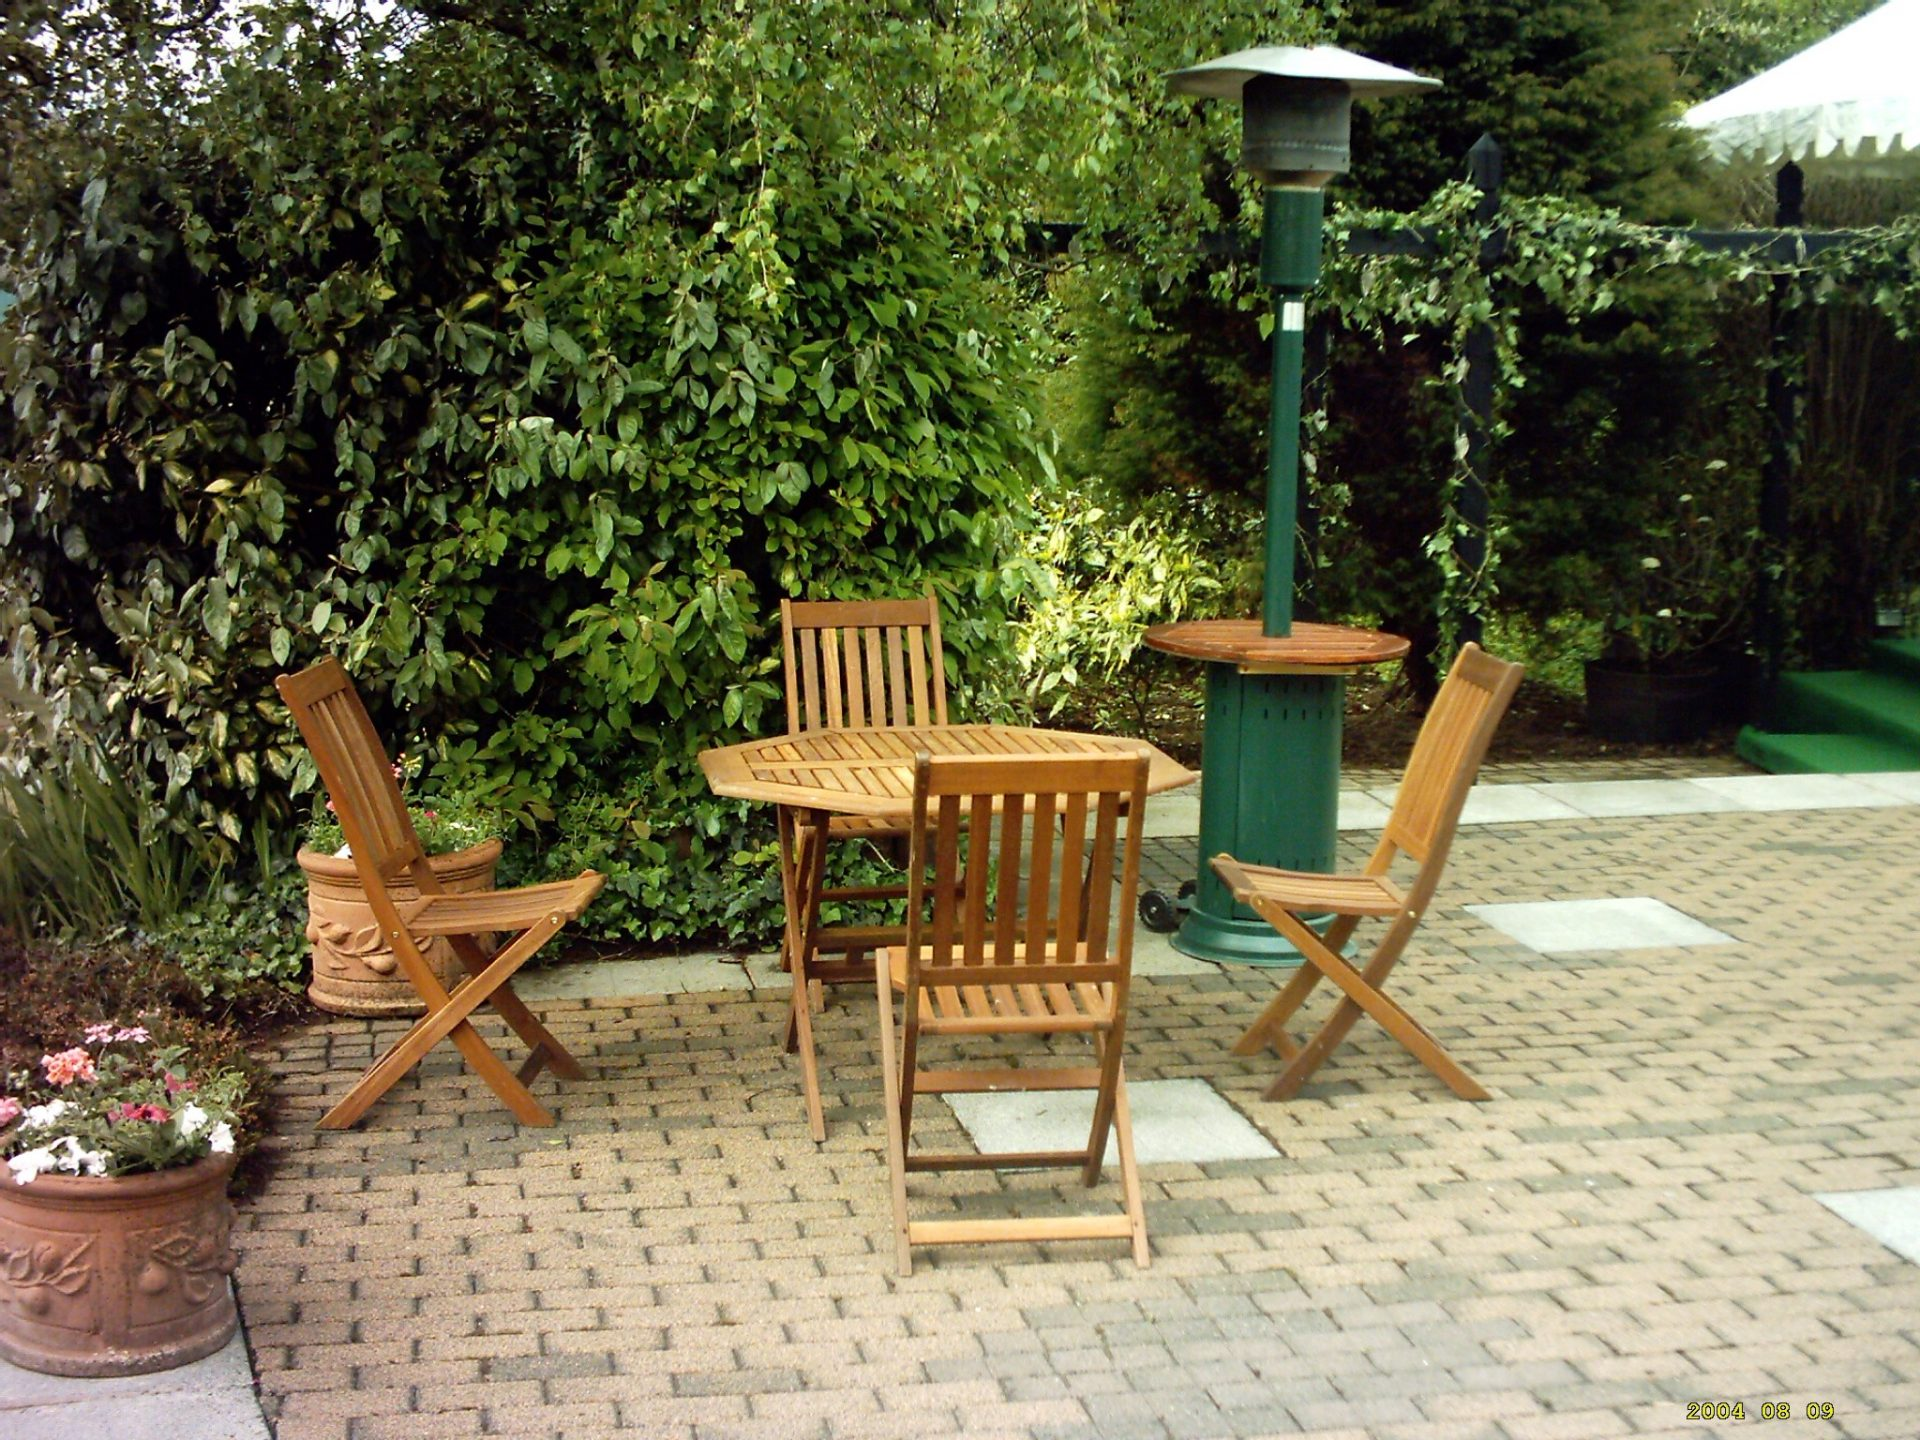 Wooden furniture with patio heater